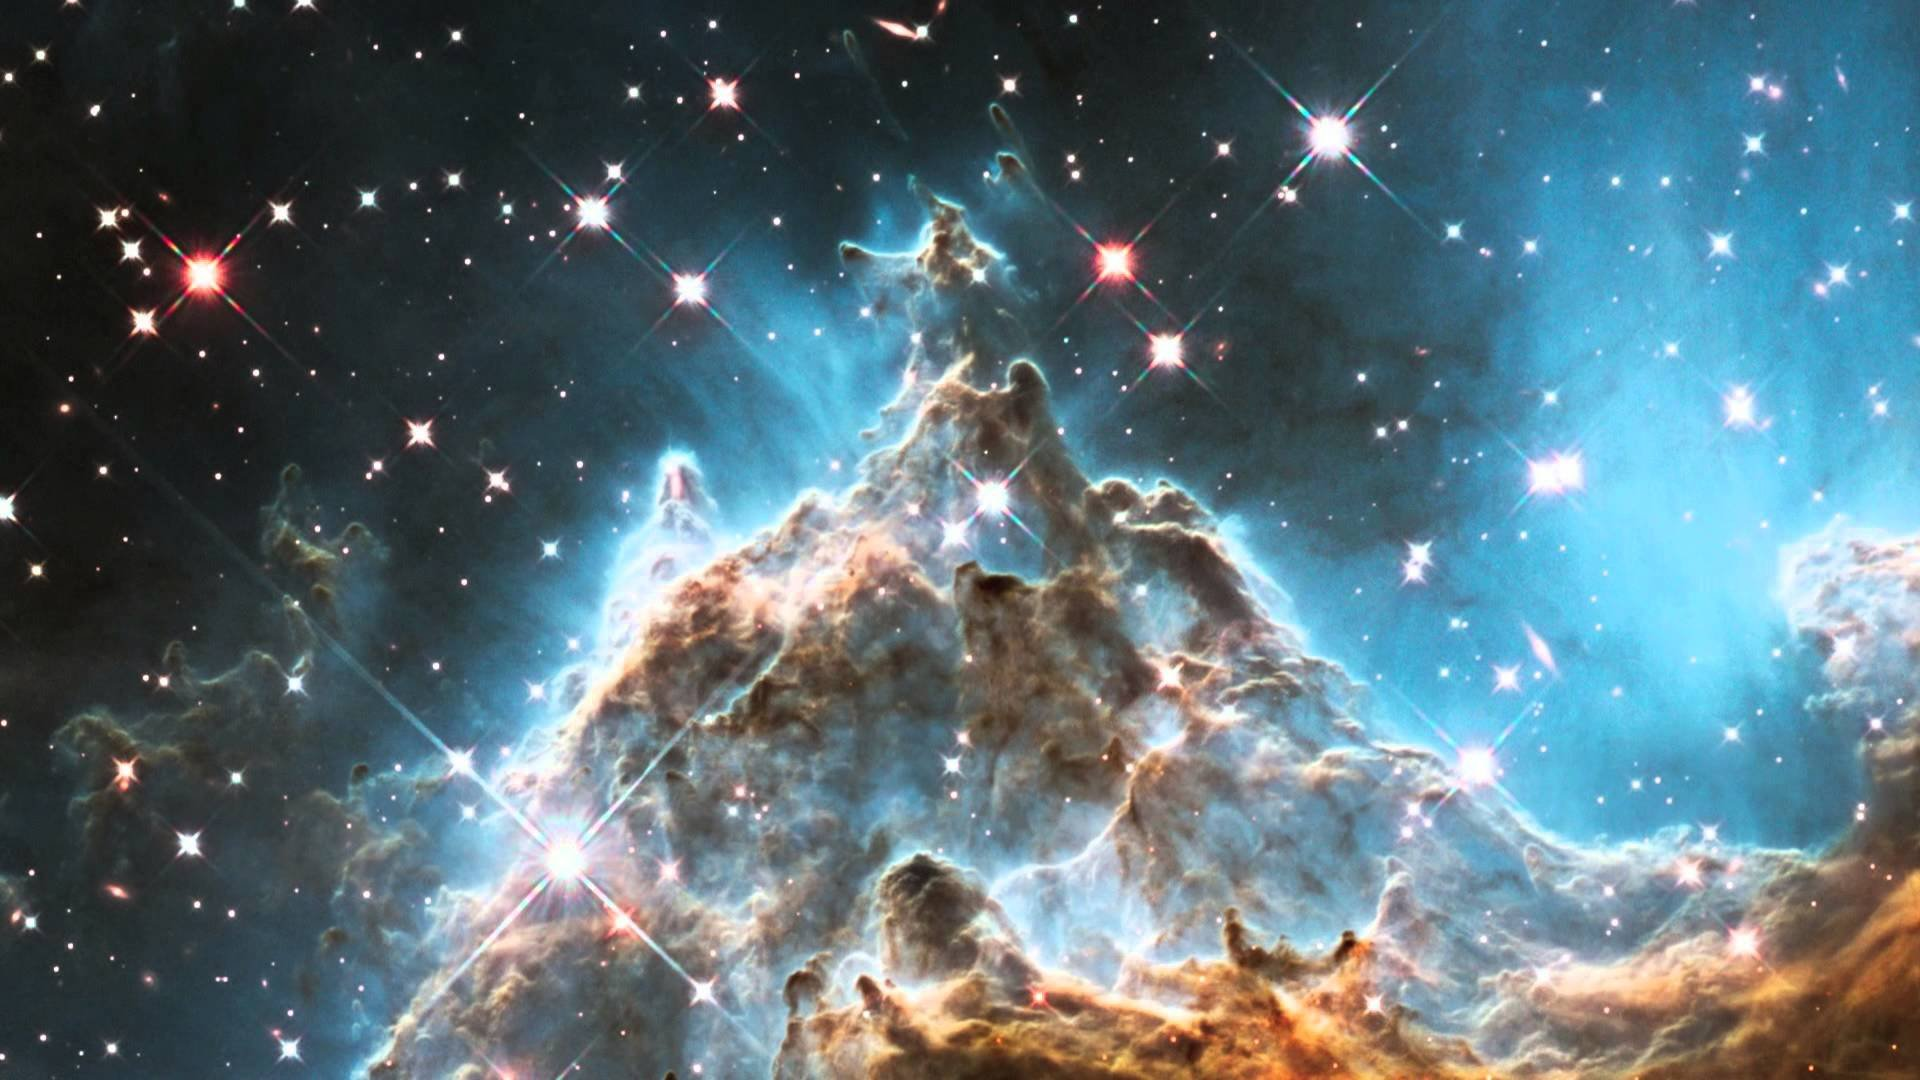 Space outer universe stars photography detail astronomy - Nasa space wallpaper 1920x1080 ...